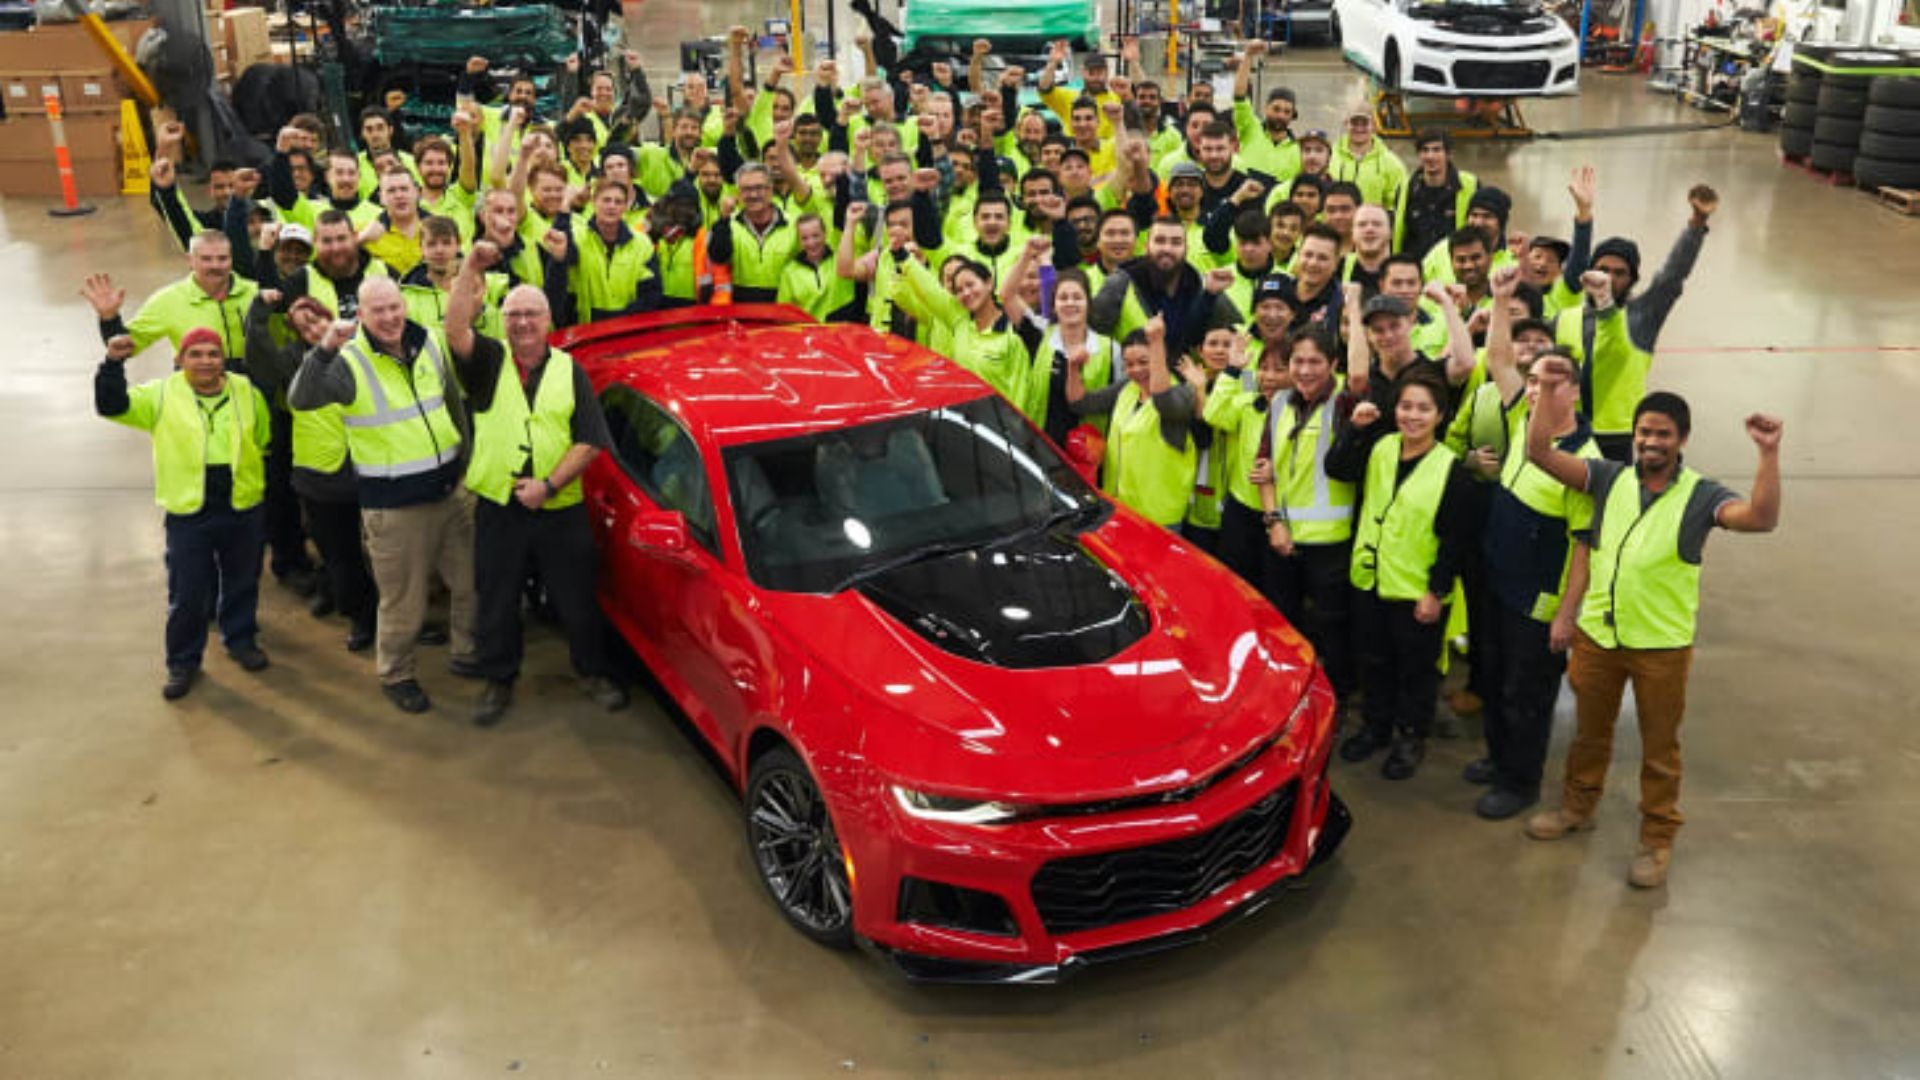 Chevy Camaro Runs Out Of Road In Australia